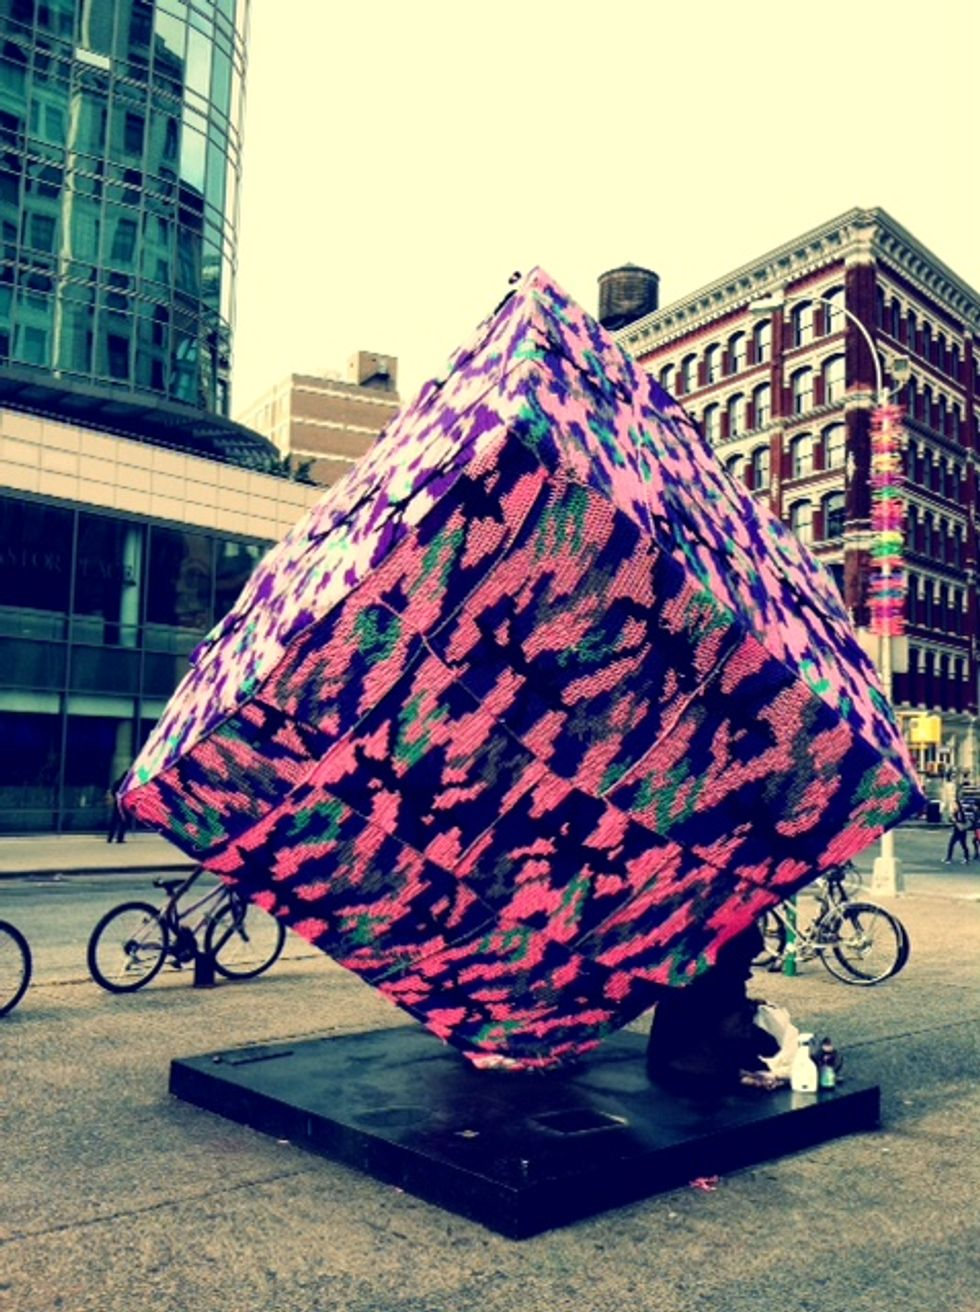 Olek Knits The Astor Place Cube A Fall Sweater!